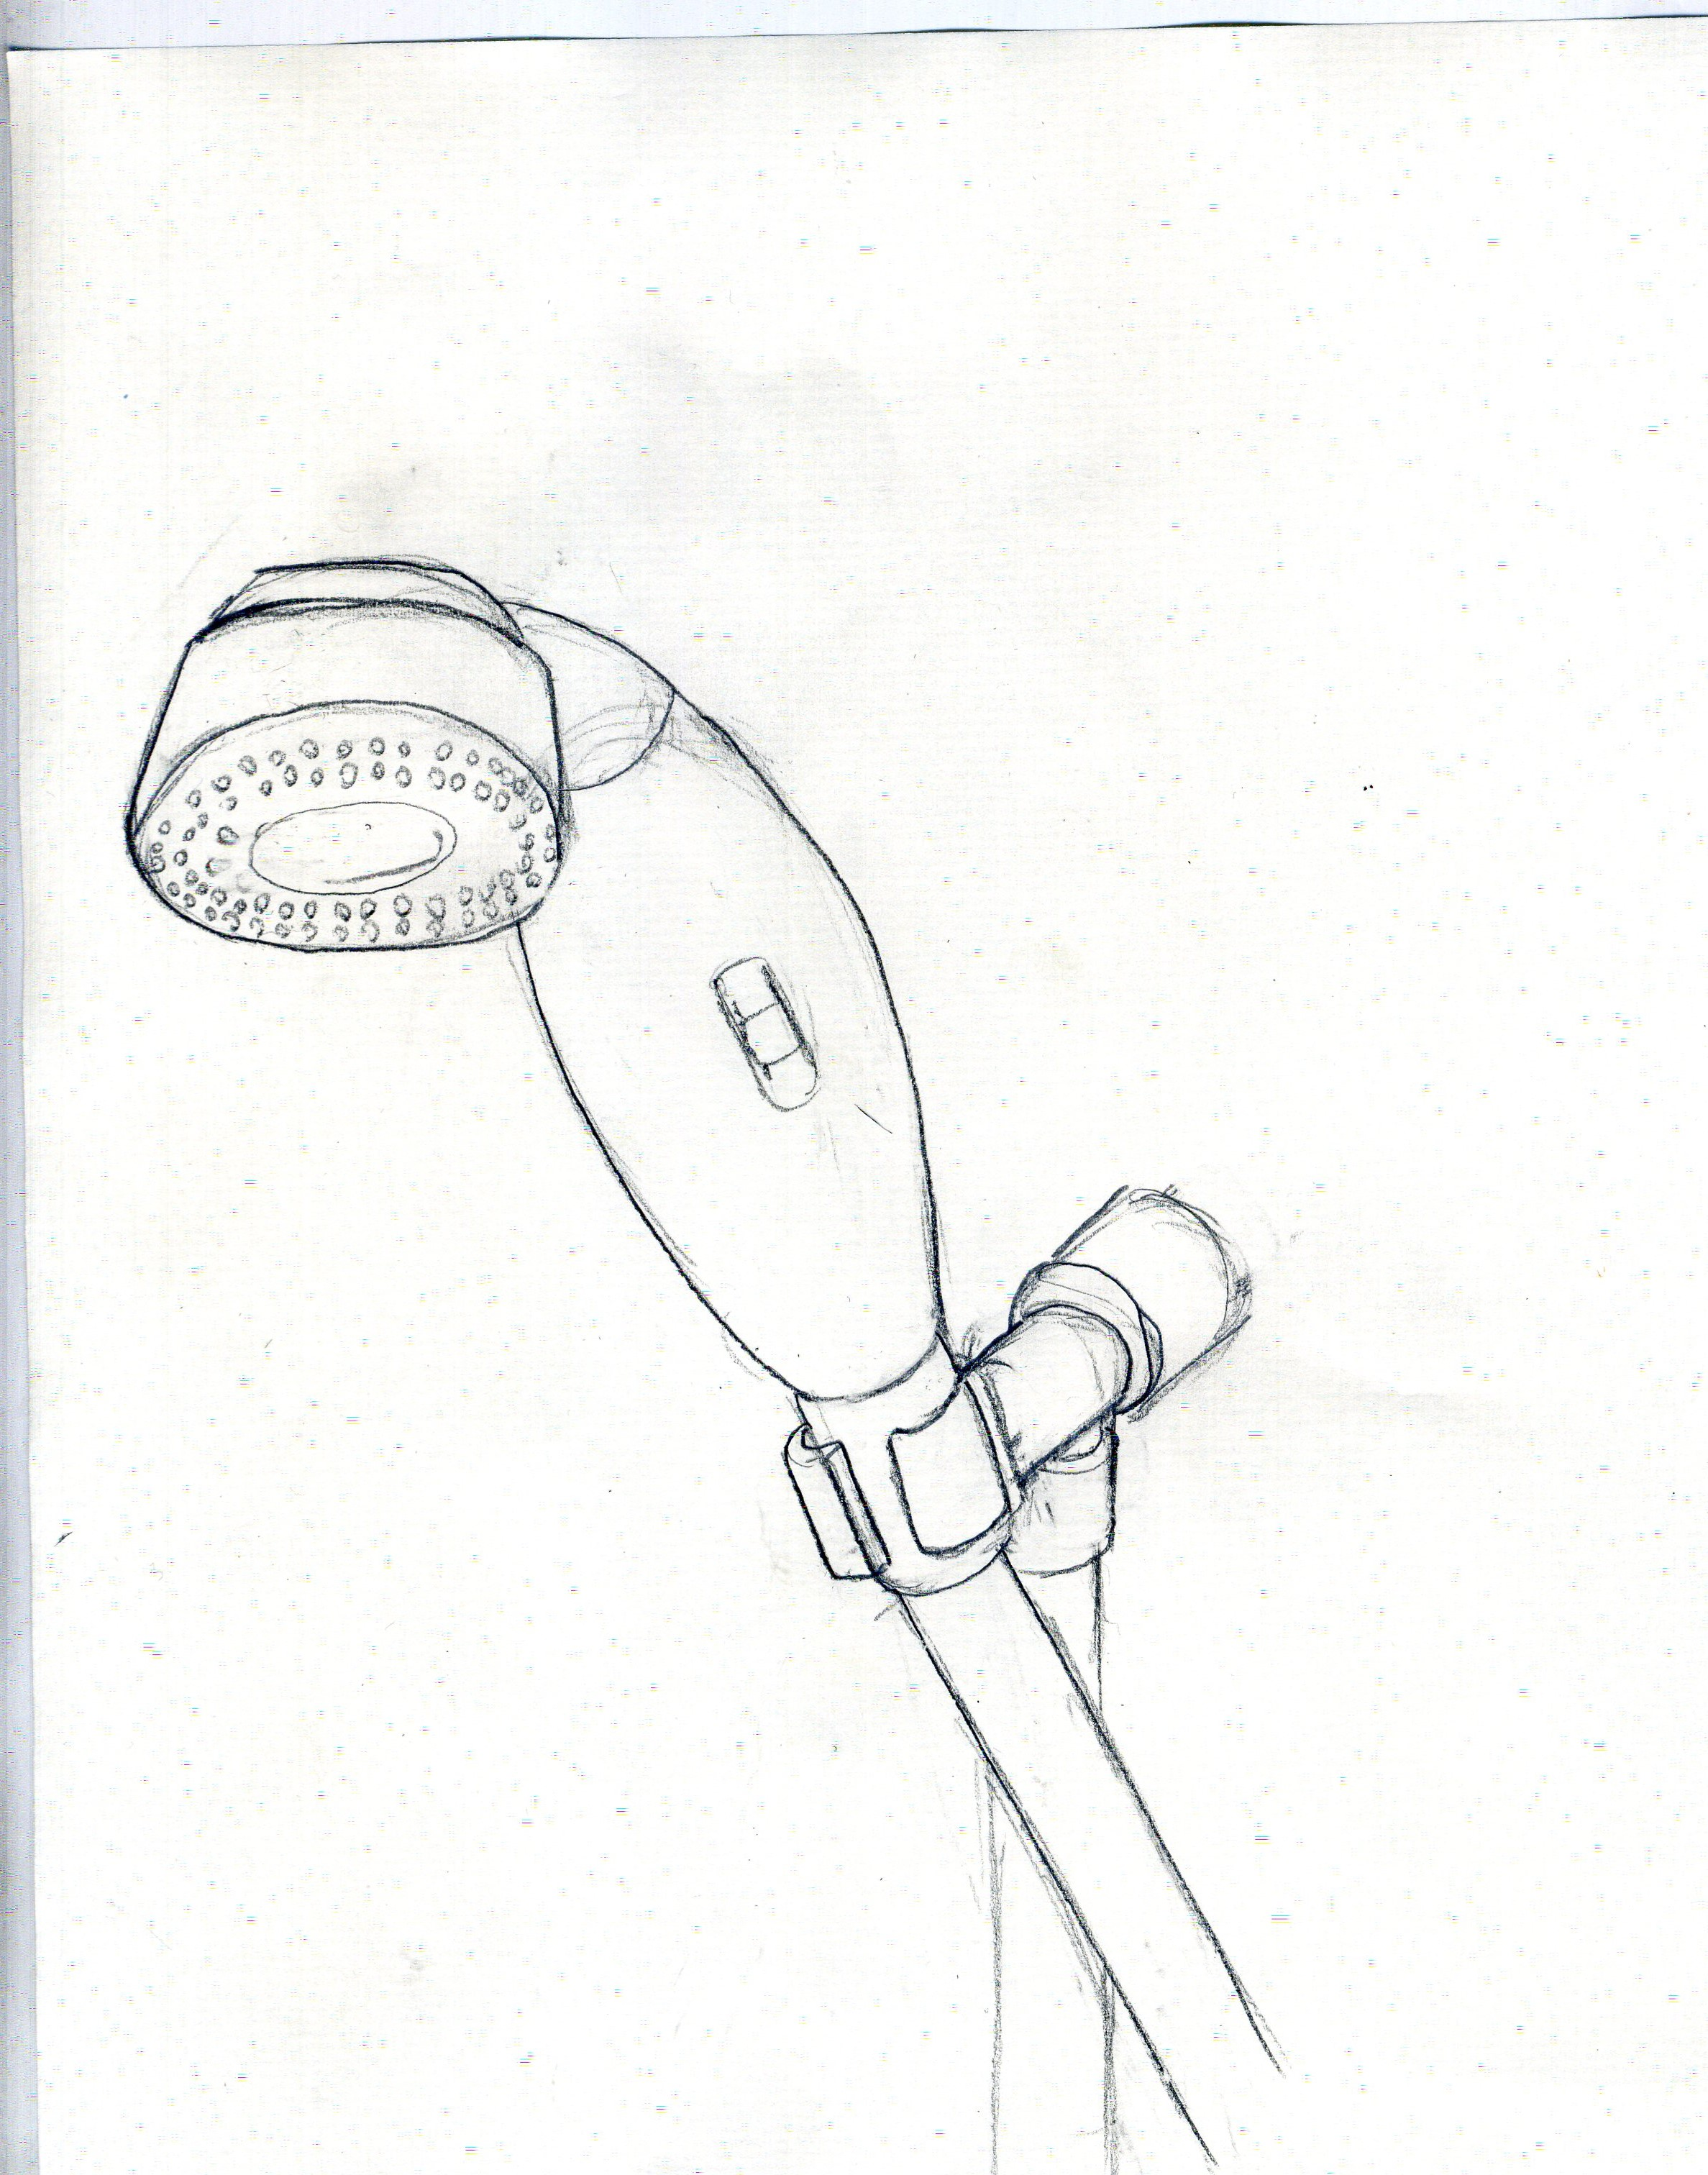 Brilliant Shower Head Drawing For Design